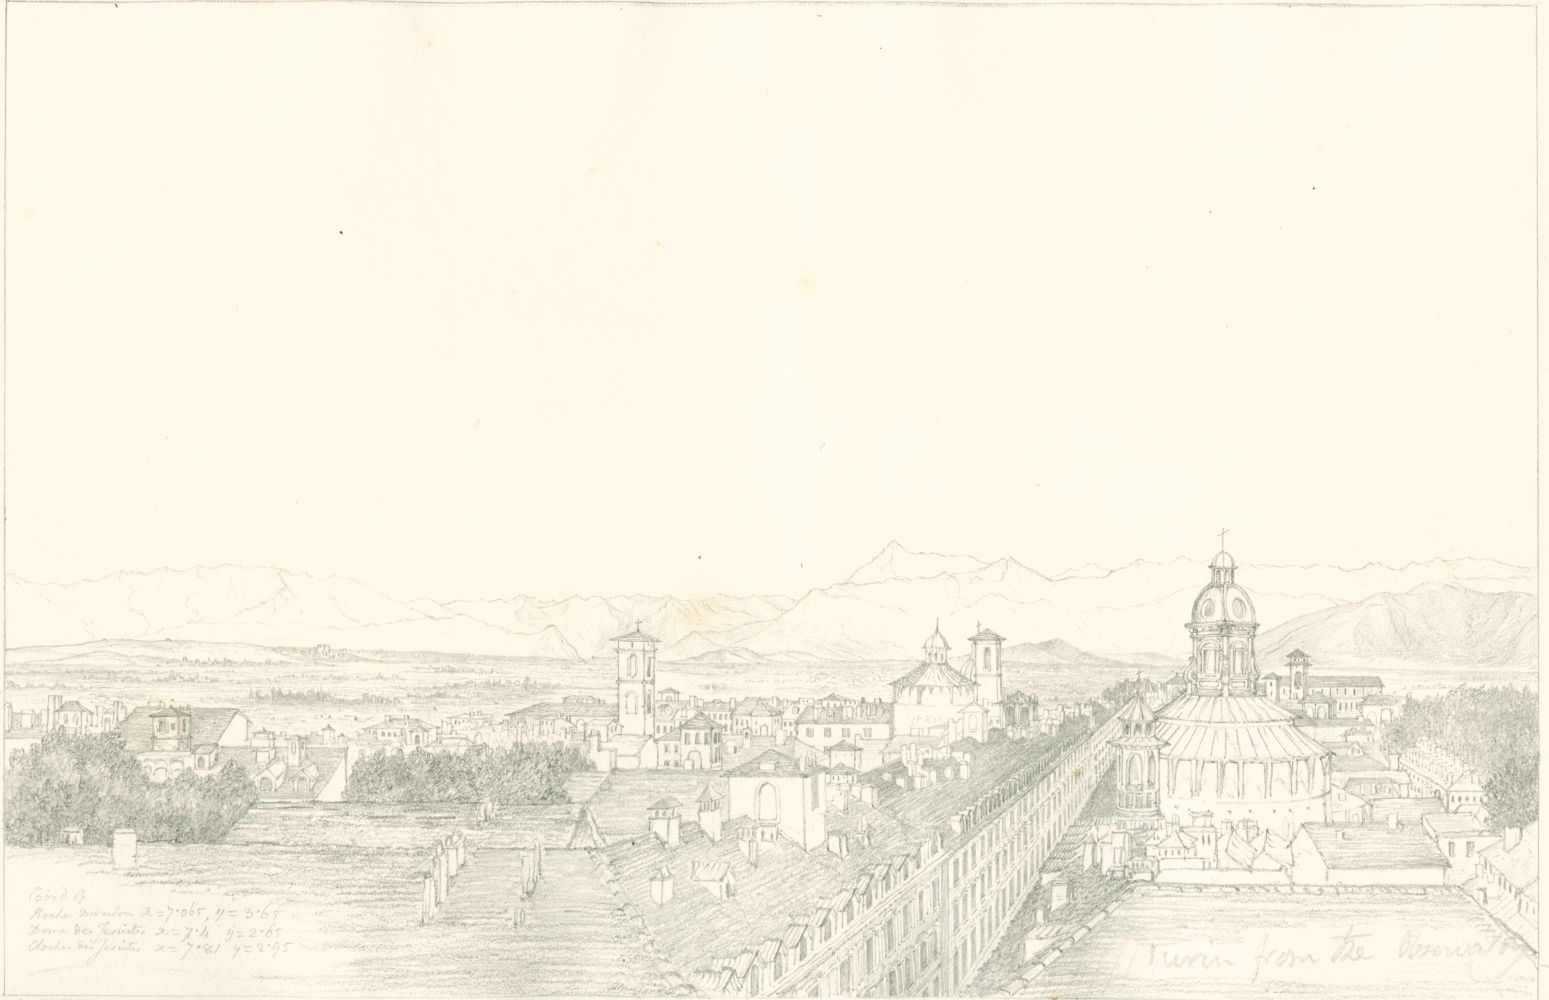 "Sir John Frederick William HERSCHEL (English, 1792-1872) ""No 351 Turin with the chain of the Alps. From the roof of the Observatory"", 1824 Camera lucida drawing, pencil on paper"